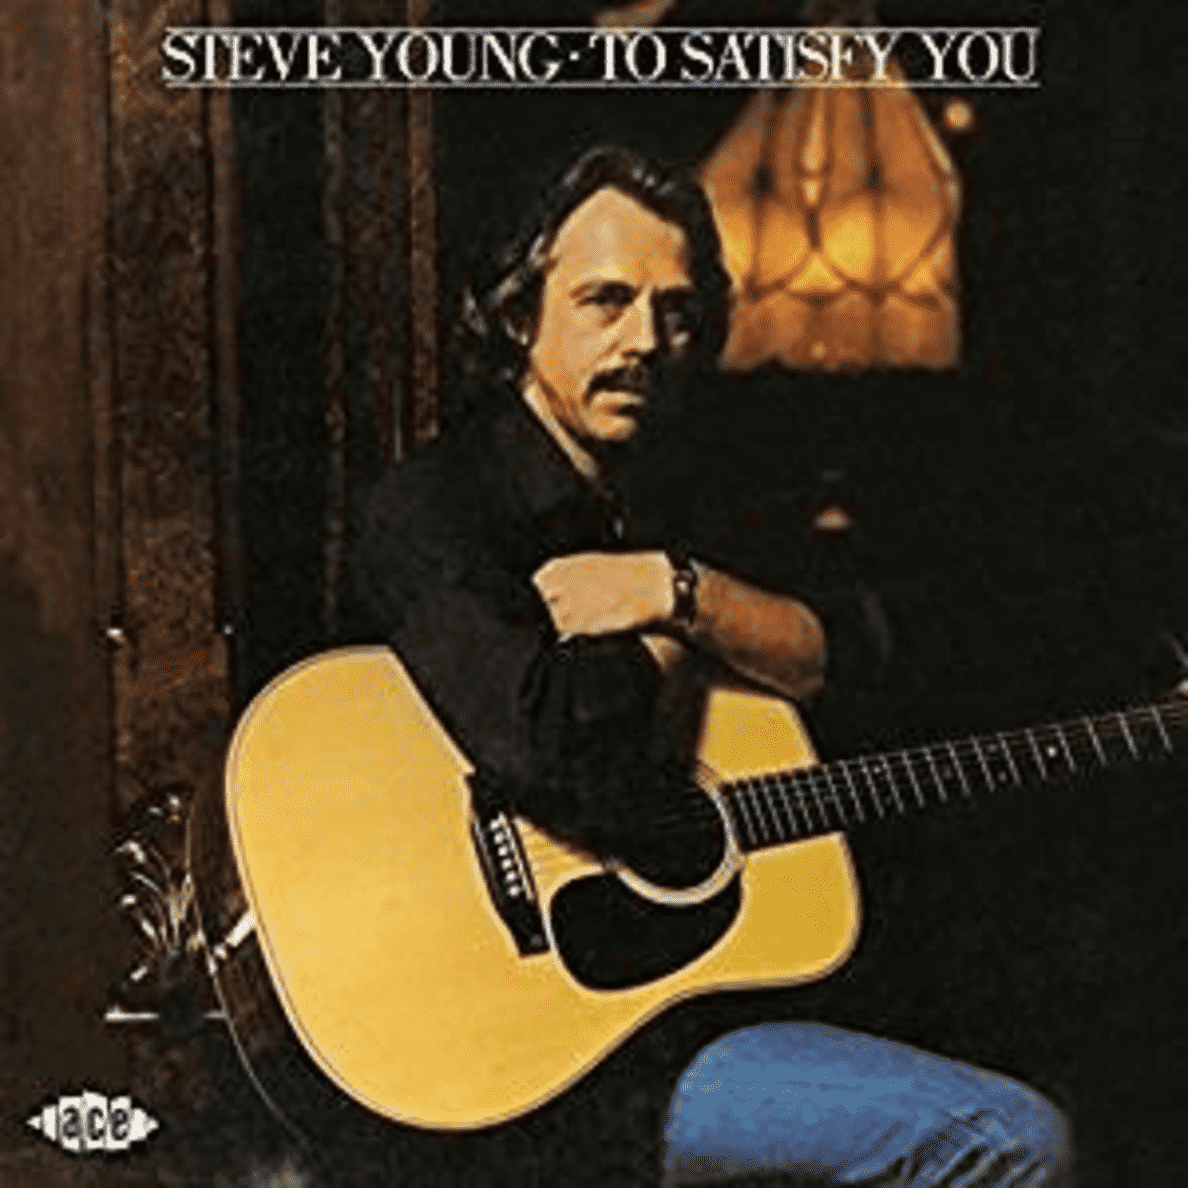 To Satisfy You Steve Young auf CD